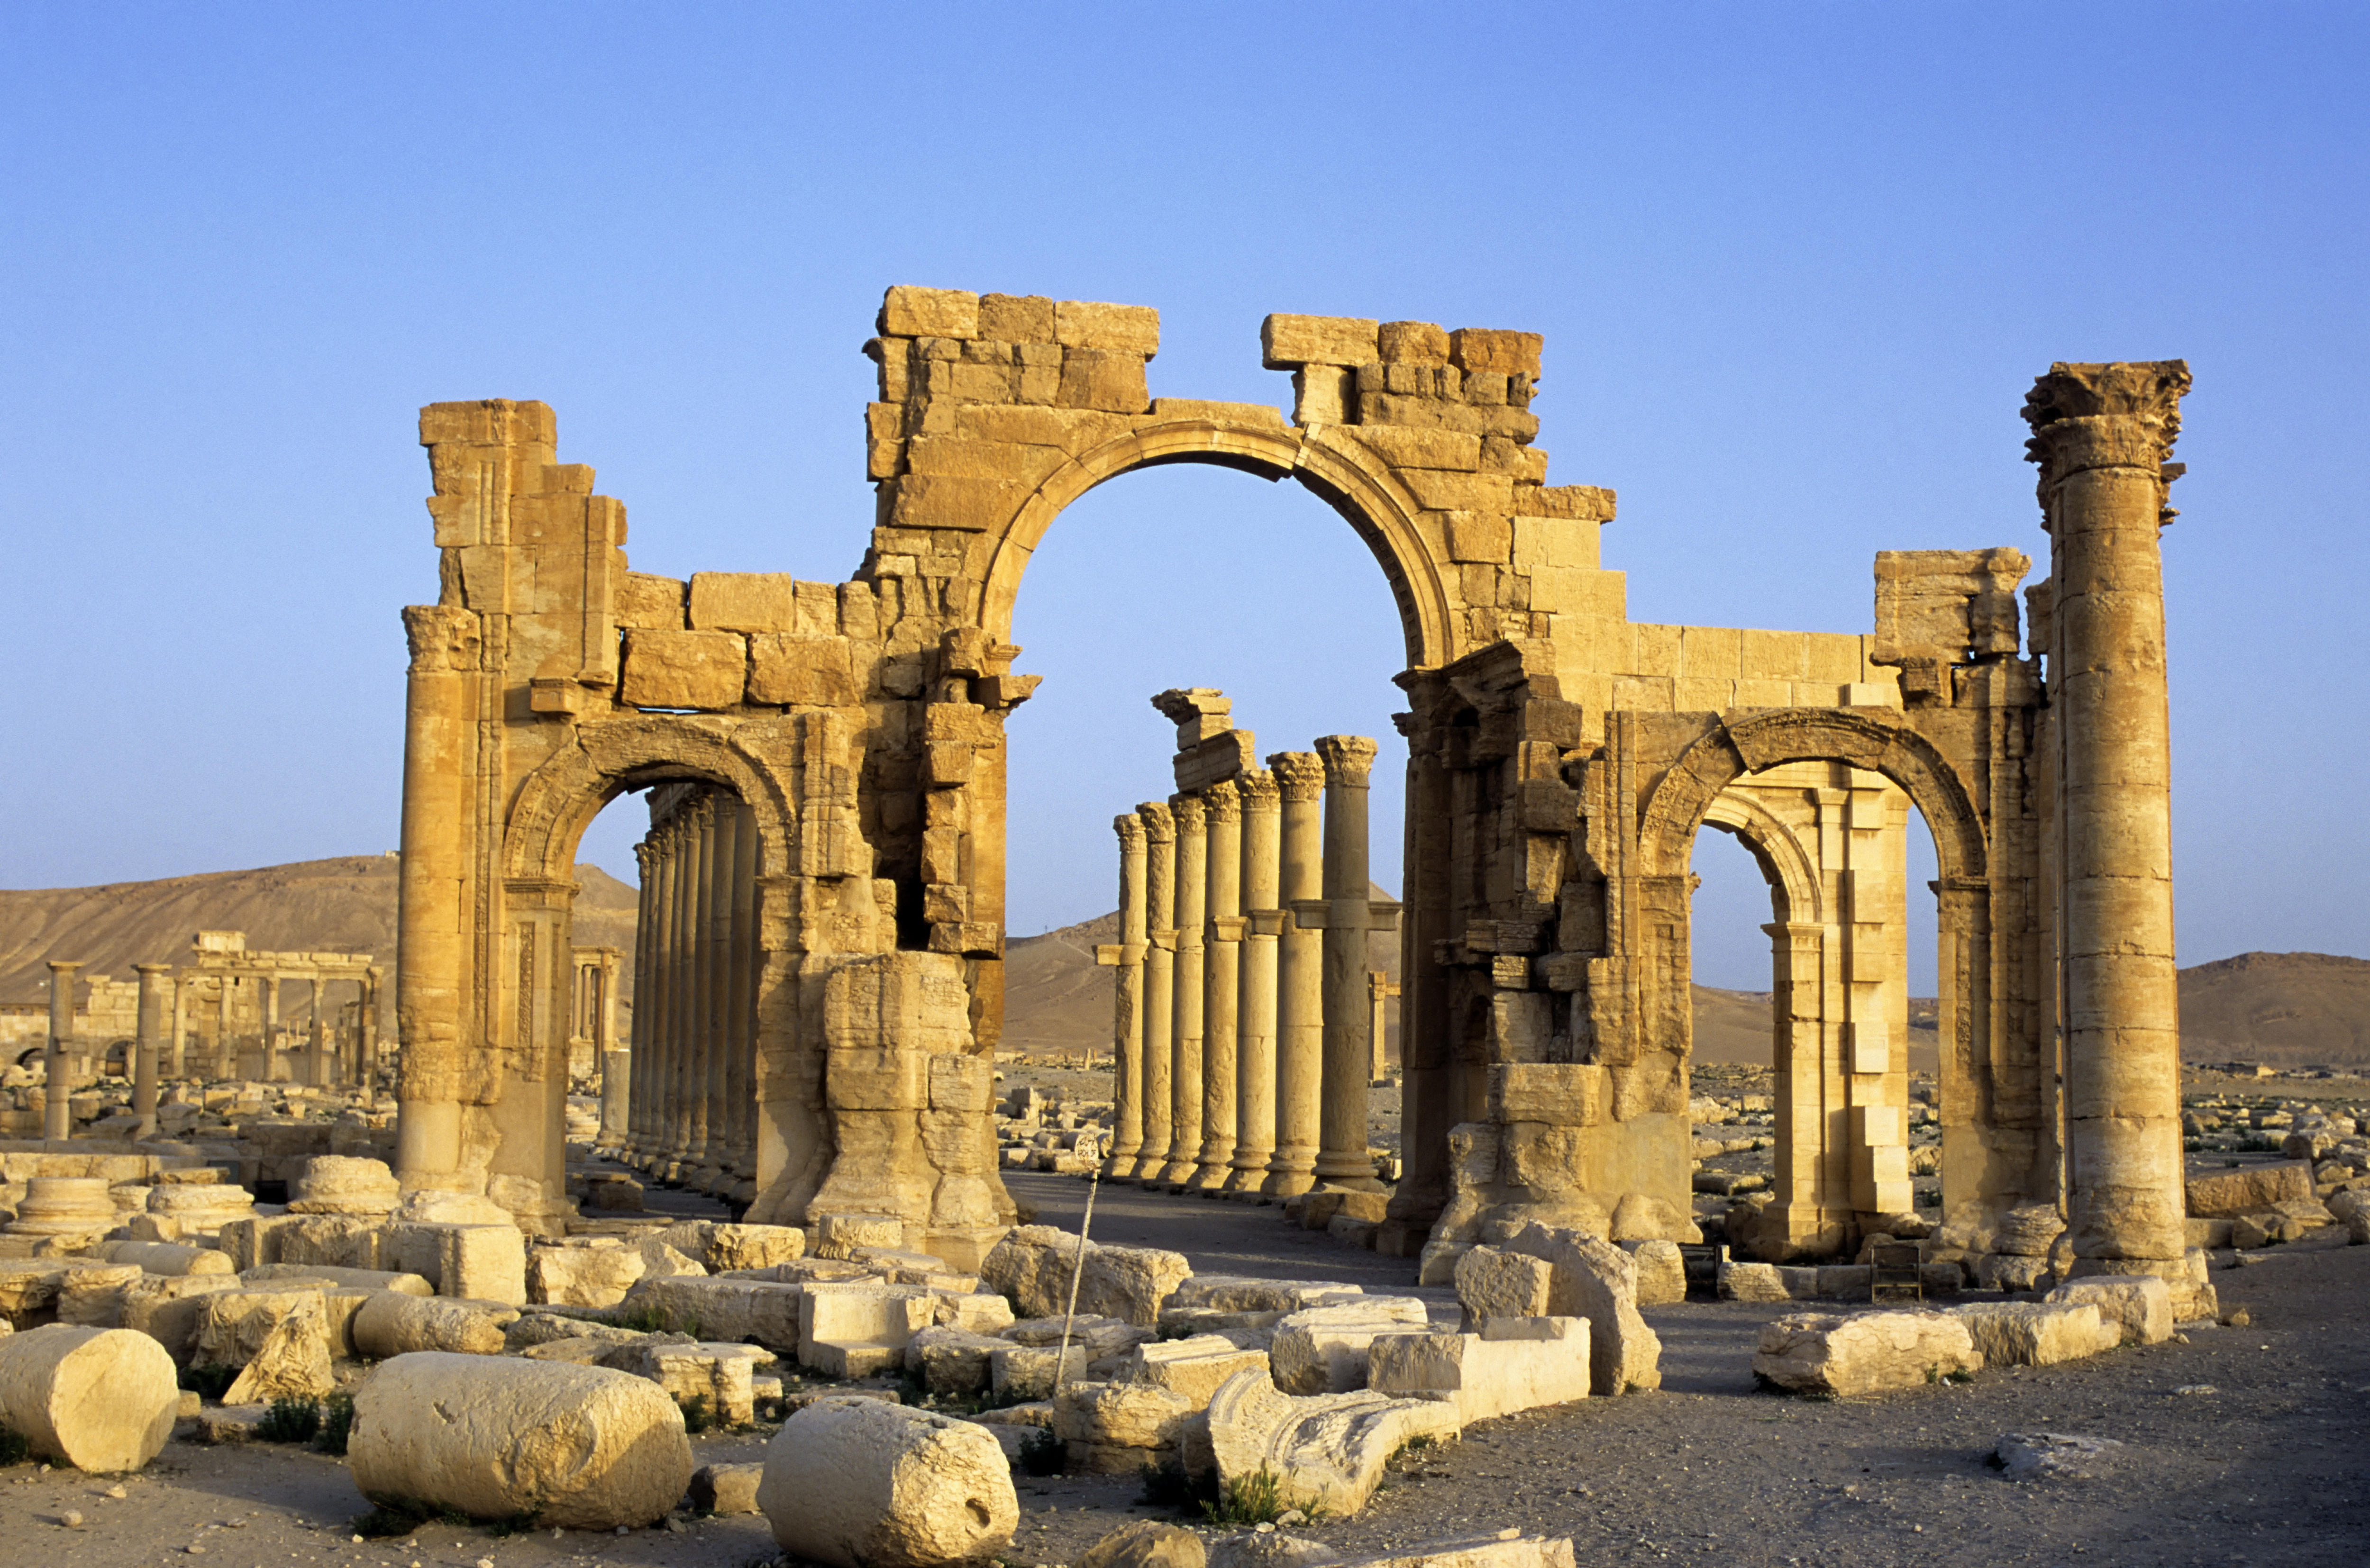 Syria, Palmyra, Ancient Roman City, Triumphal Arch And Colonnaded Street on Jan. 1, 2001.